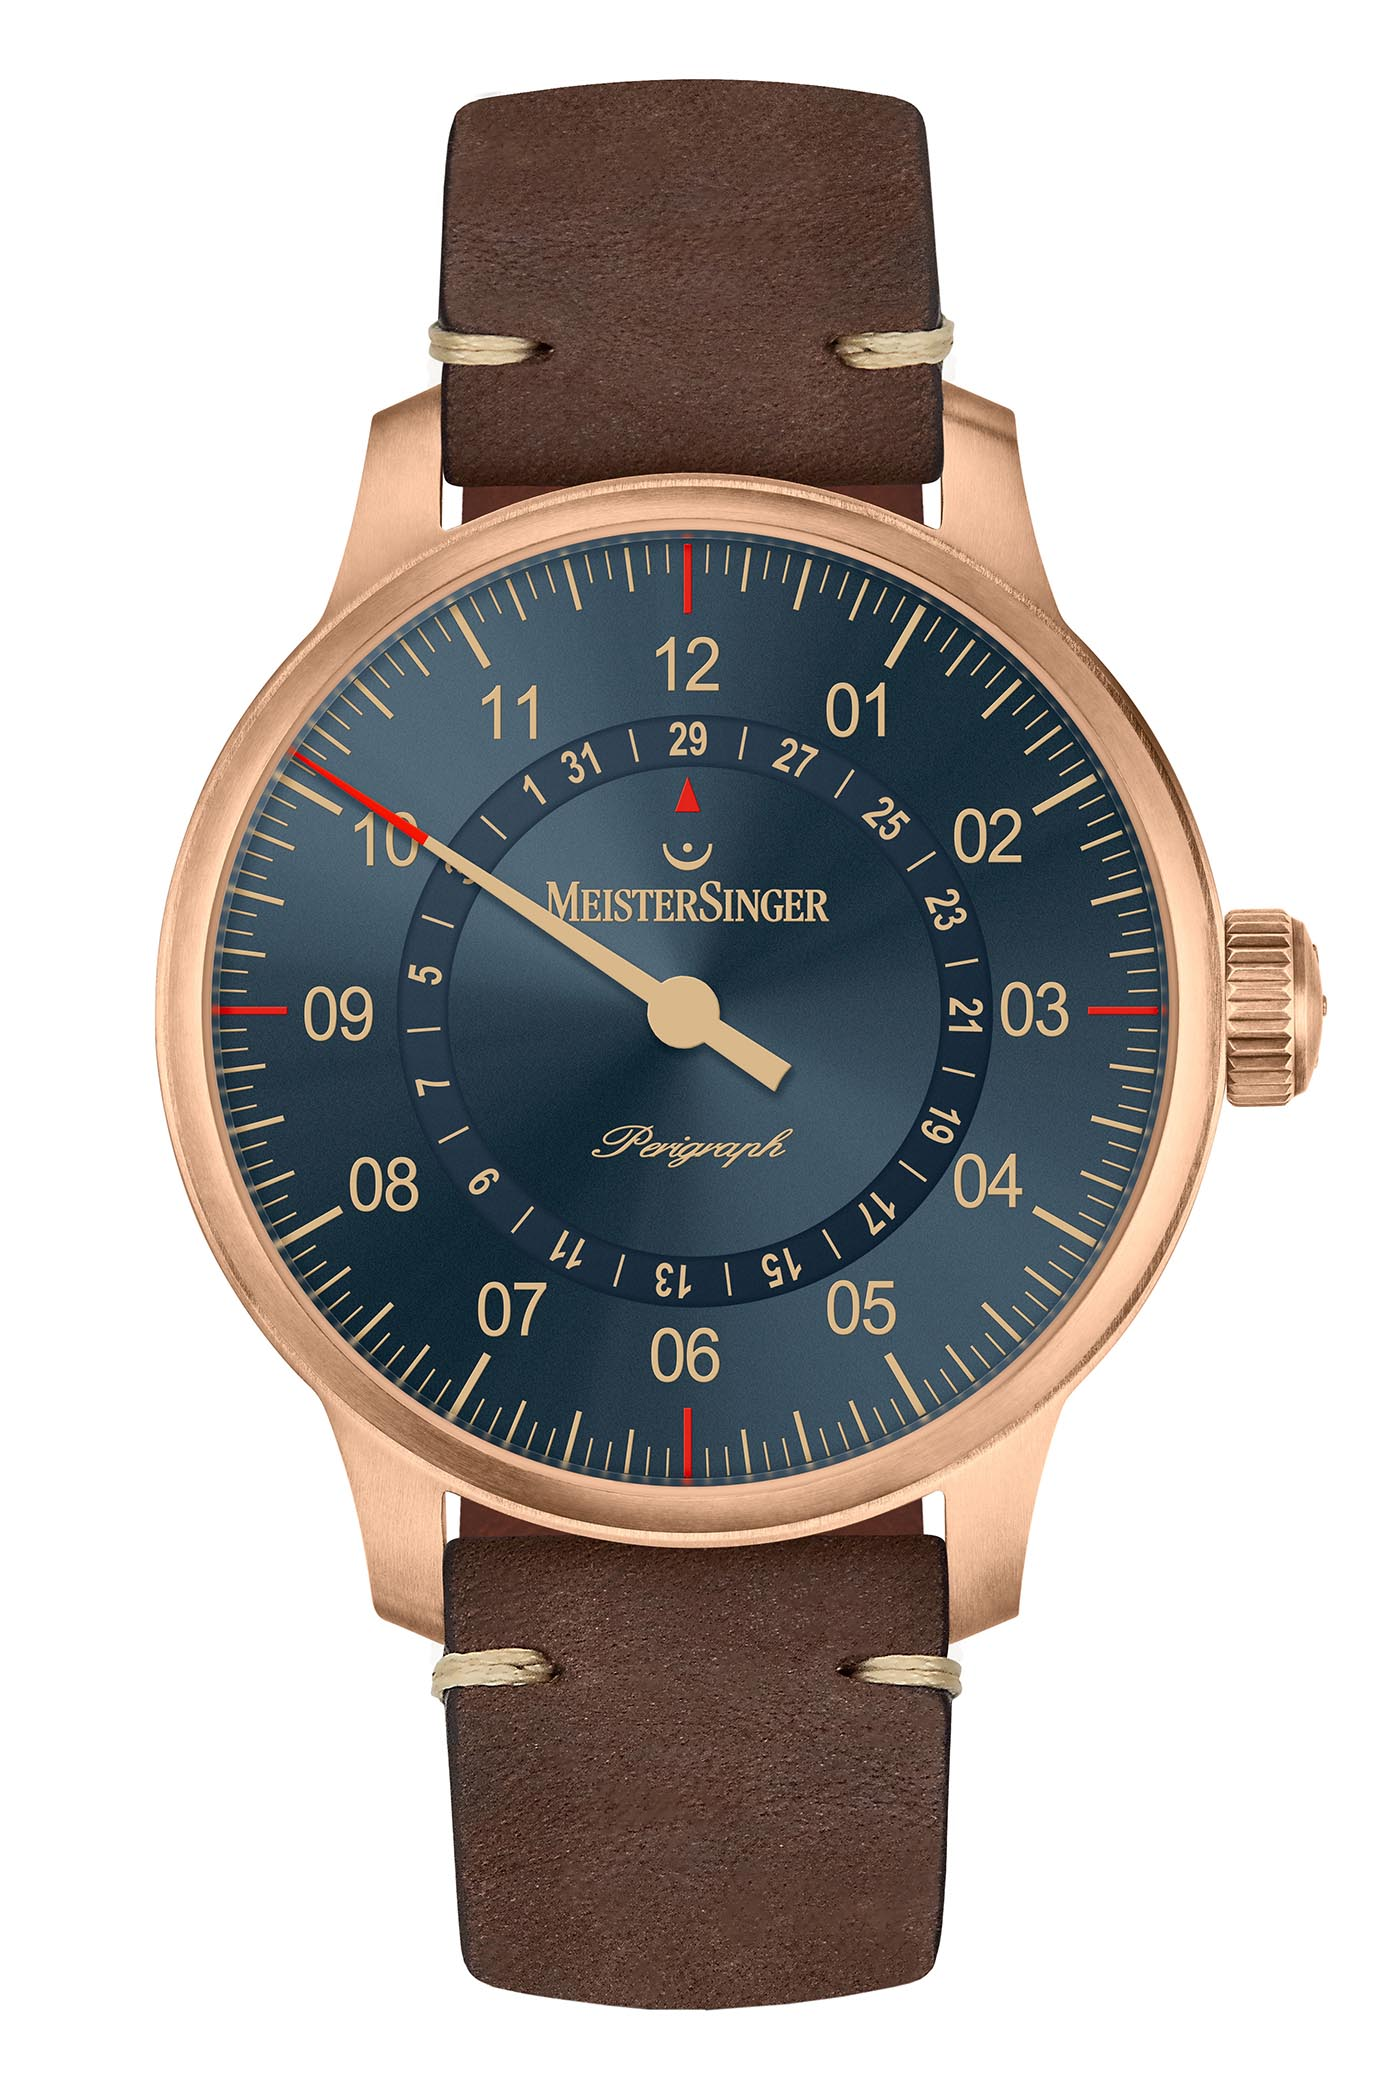 Baselworld 2019 - MeisterSinger Bronze Editions No. 03, Perigraph and Metris - 2